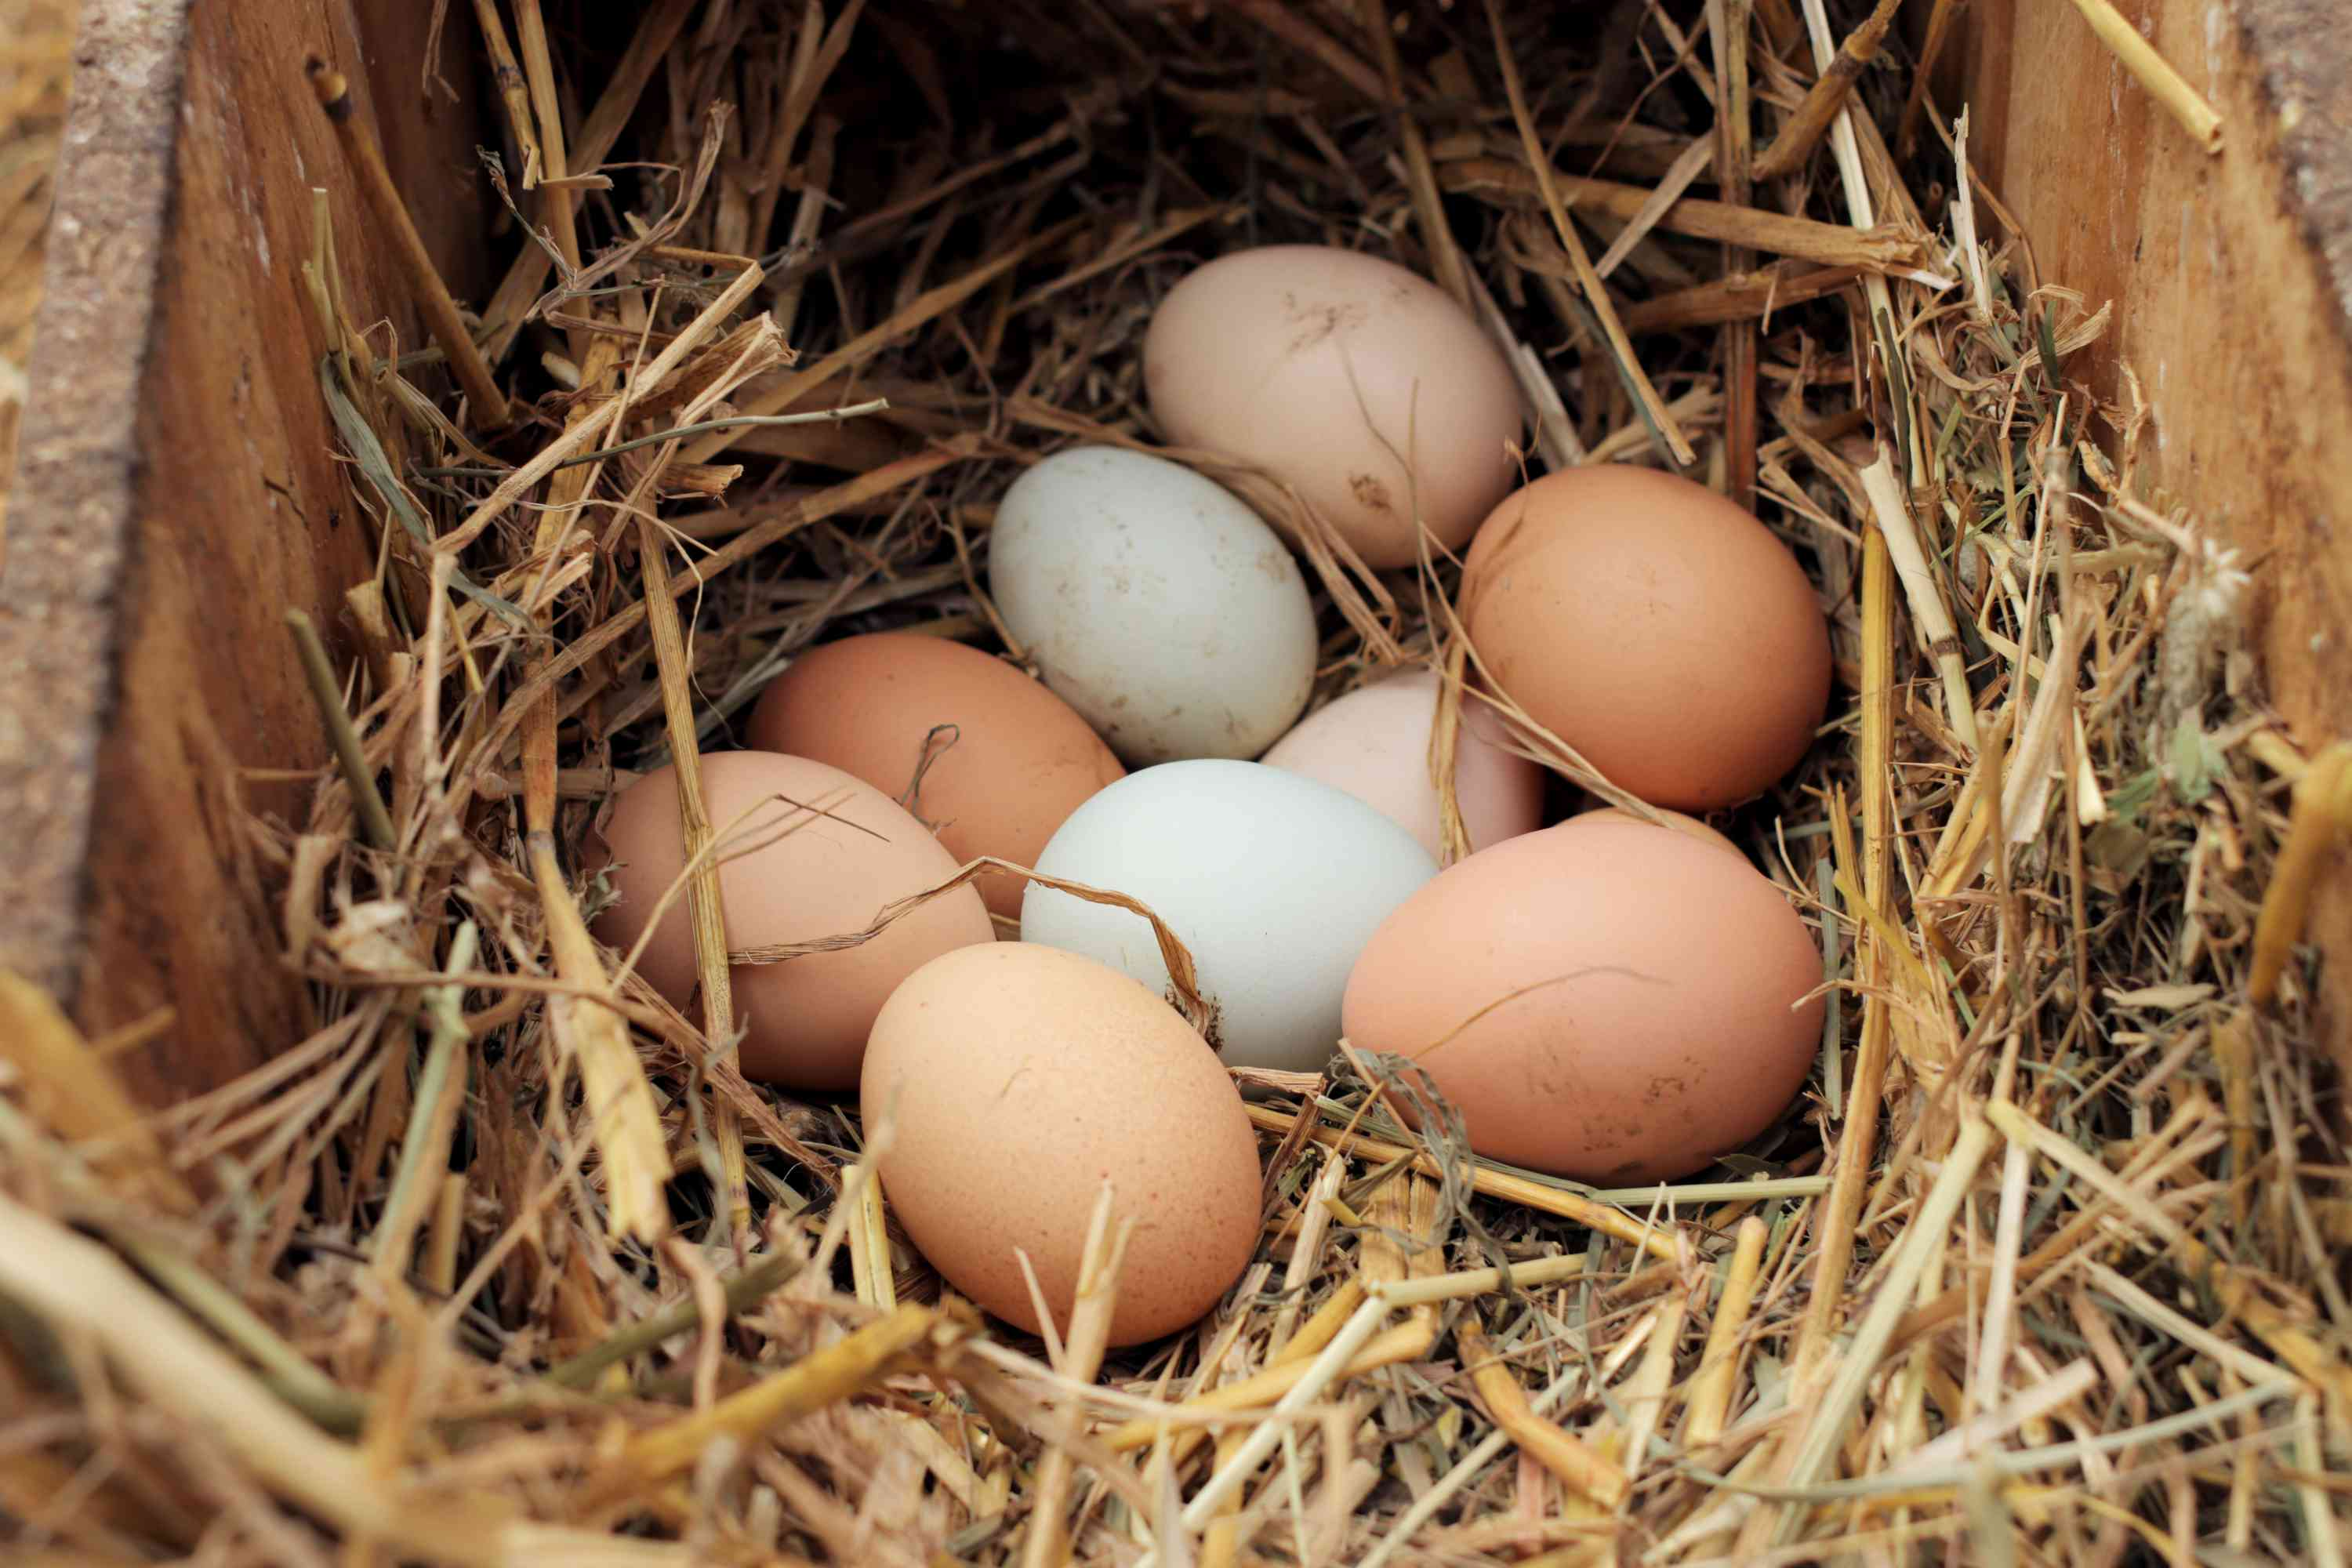 collecting chicken eggs